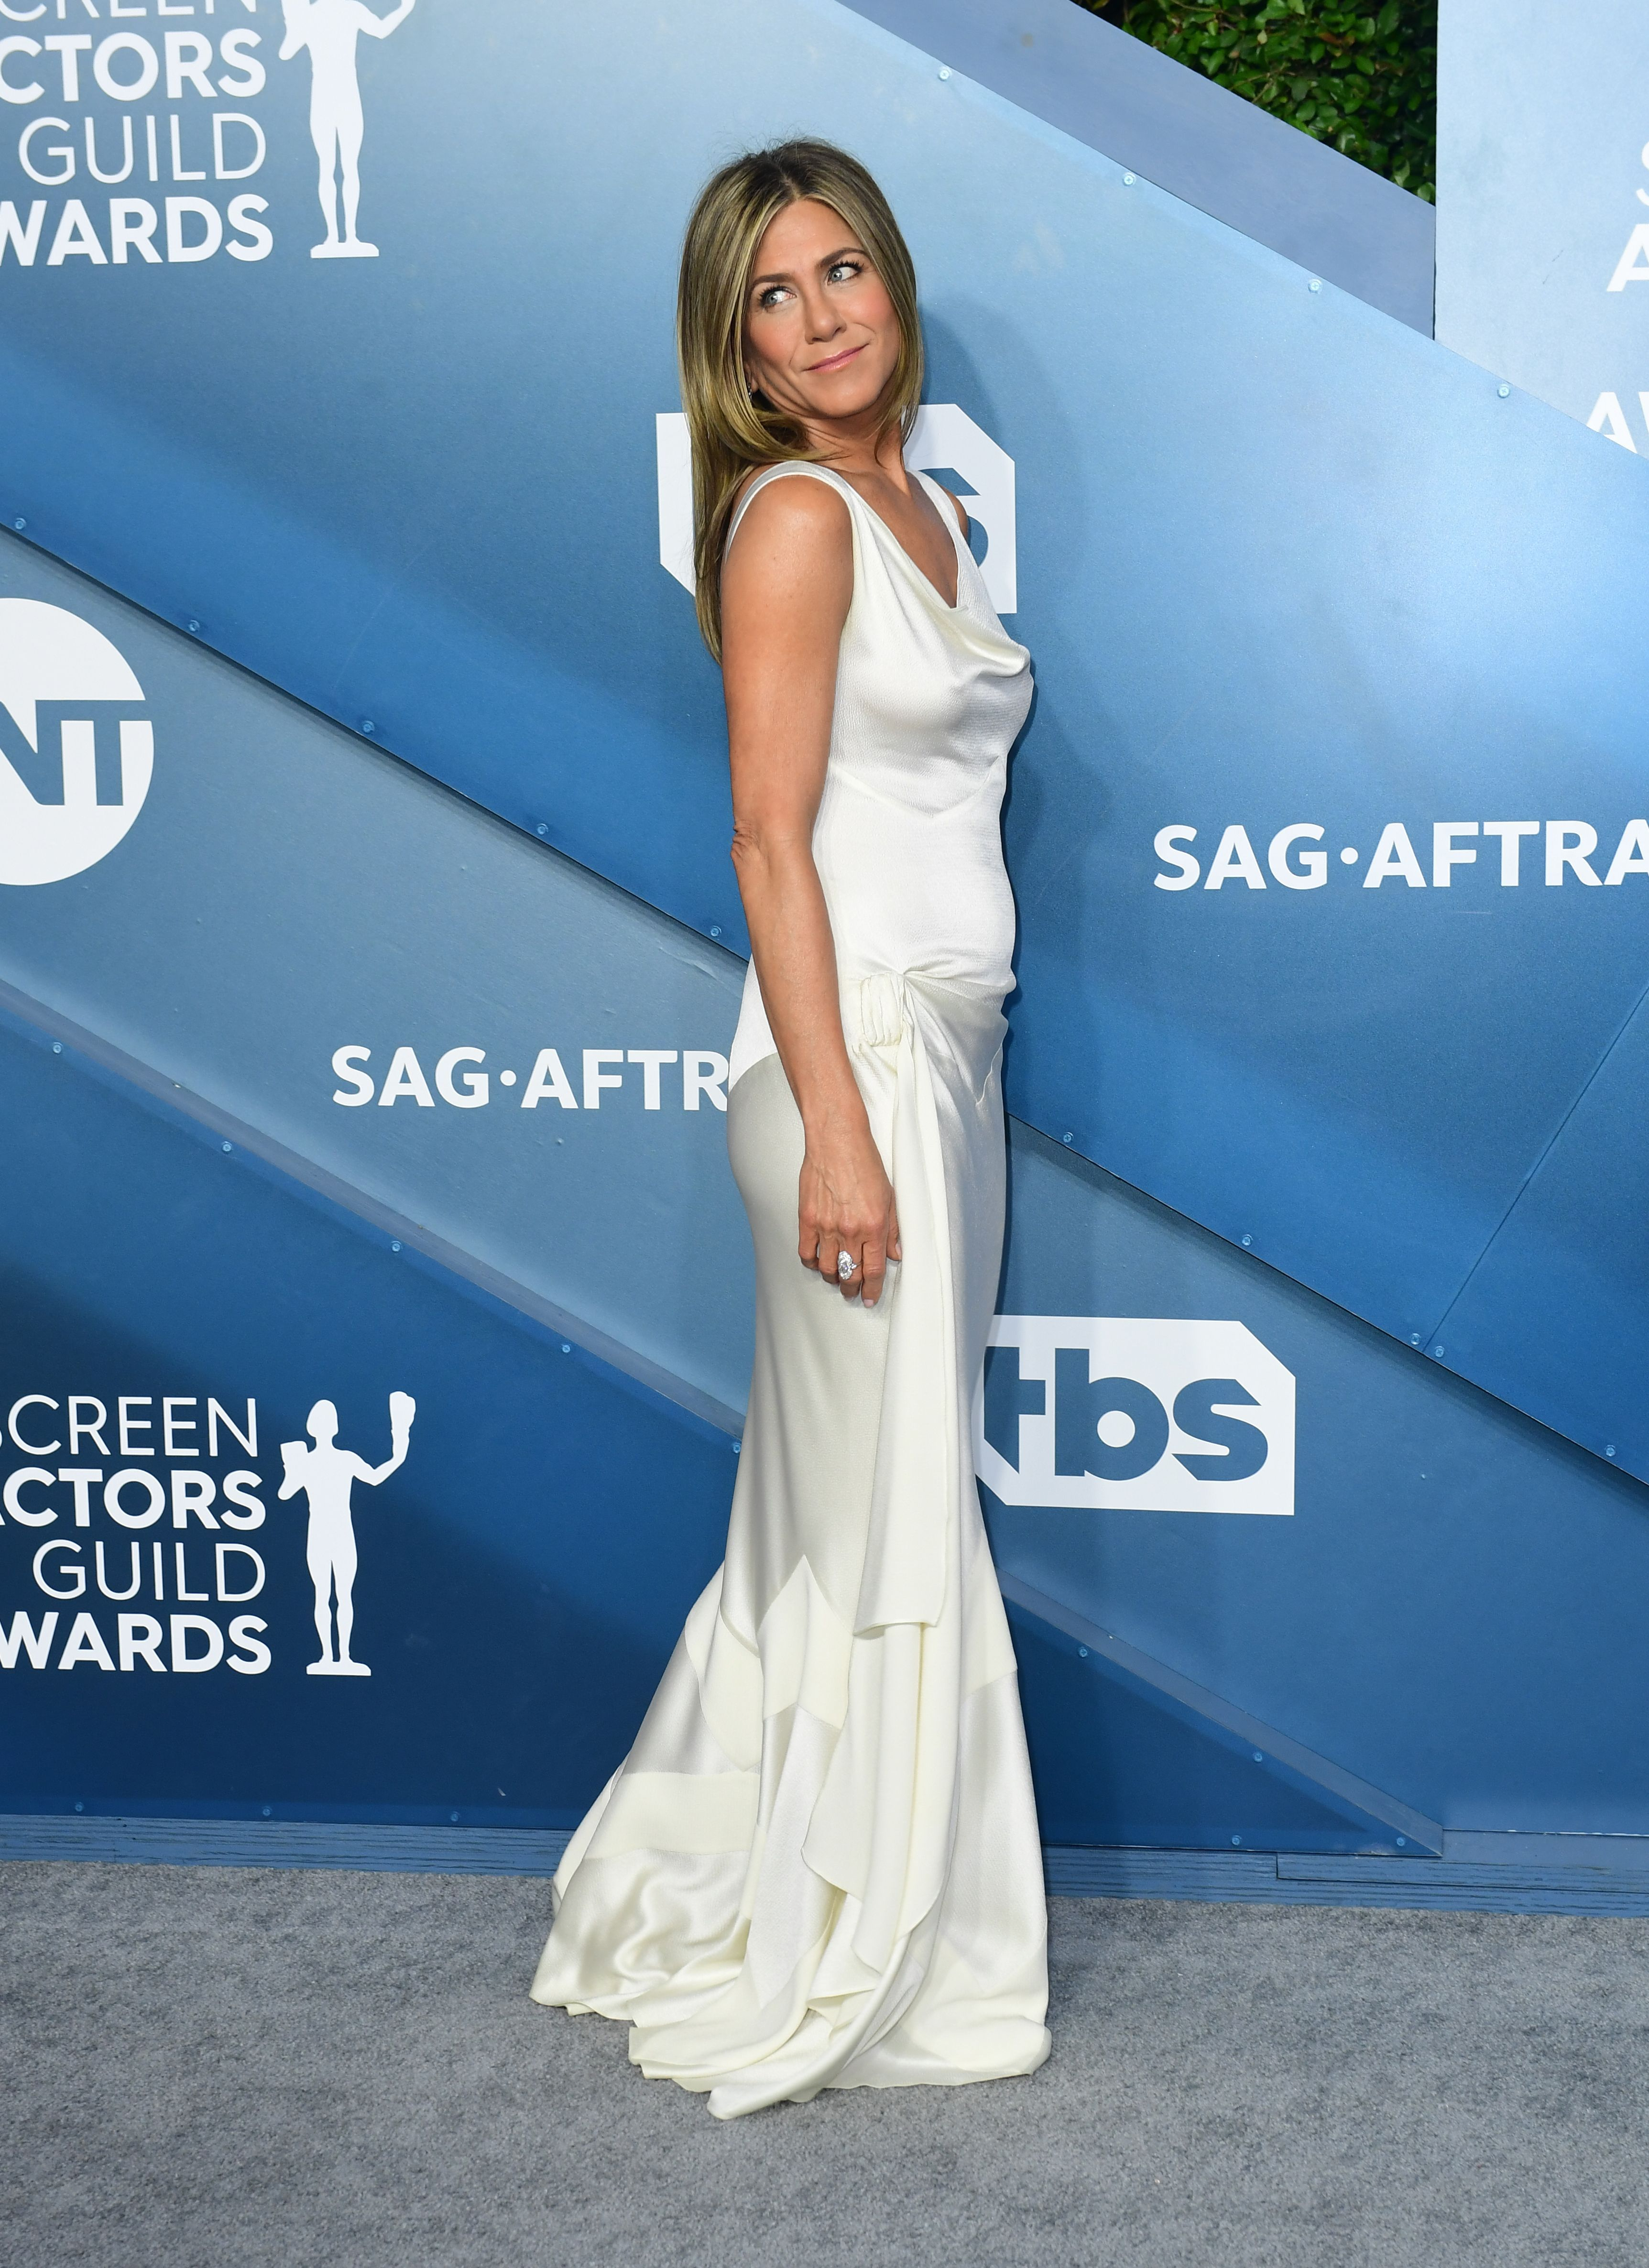 Jennifer Aniston Channels Bridal Vibes in a White Dress at the 2020 SAG Awards